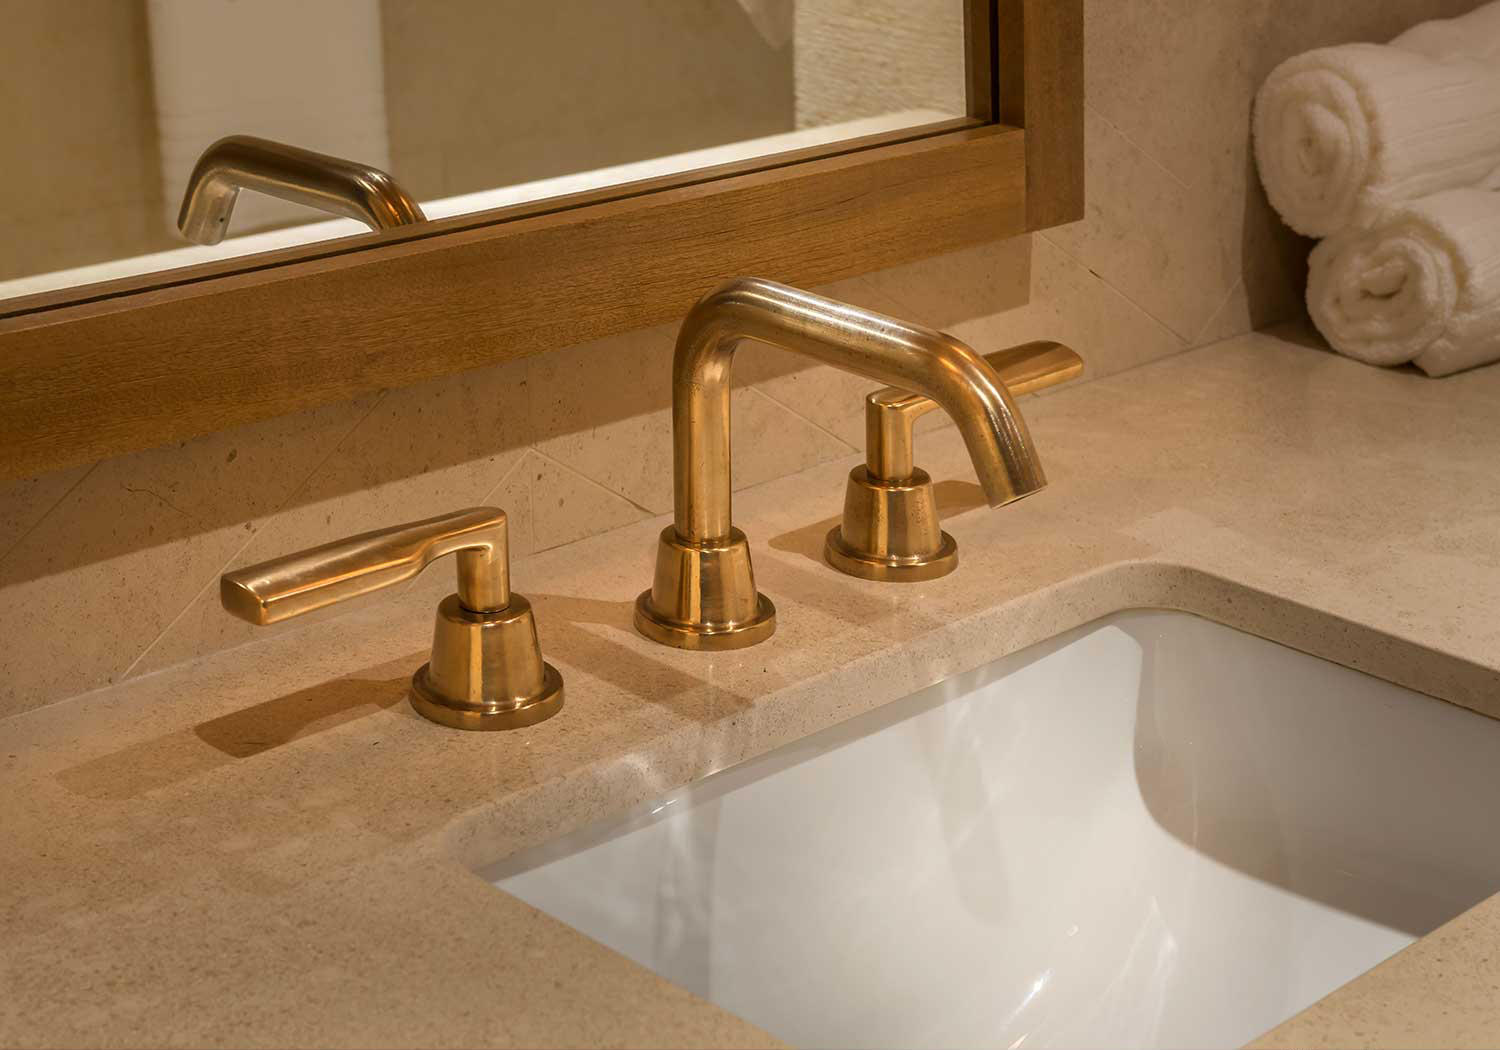 Faucets Fixtures Clf Wlf O3 Wash Basin Taps From Sun Valley